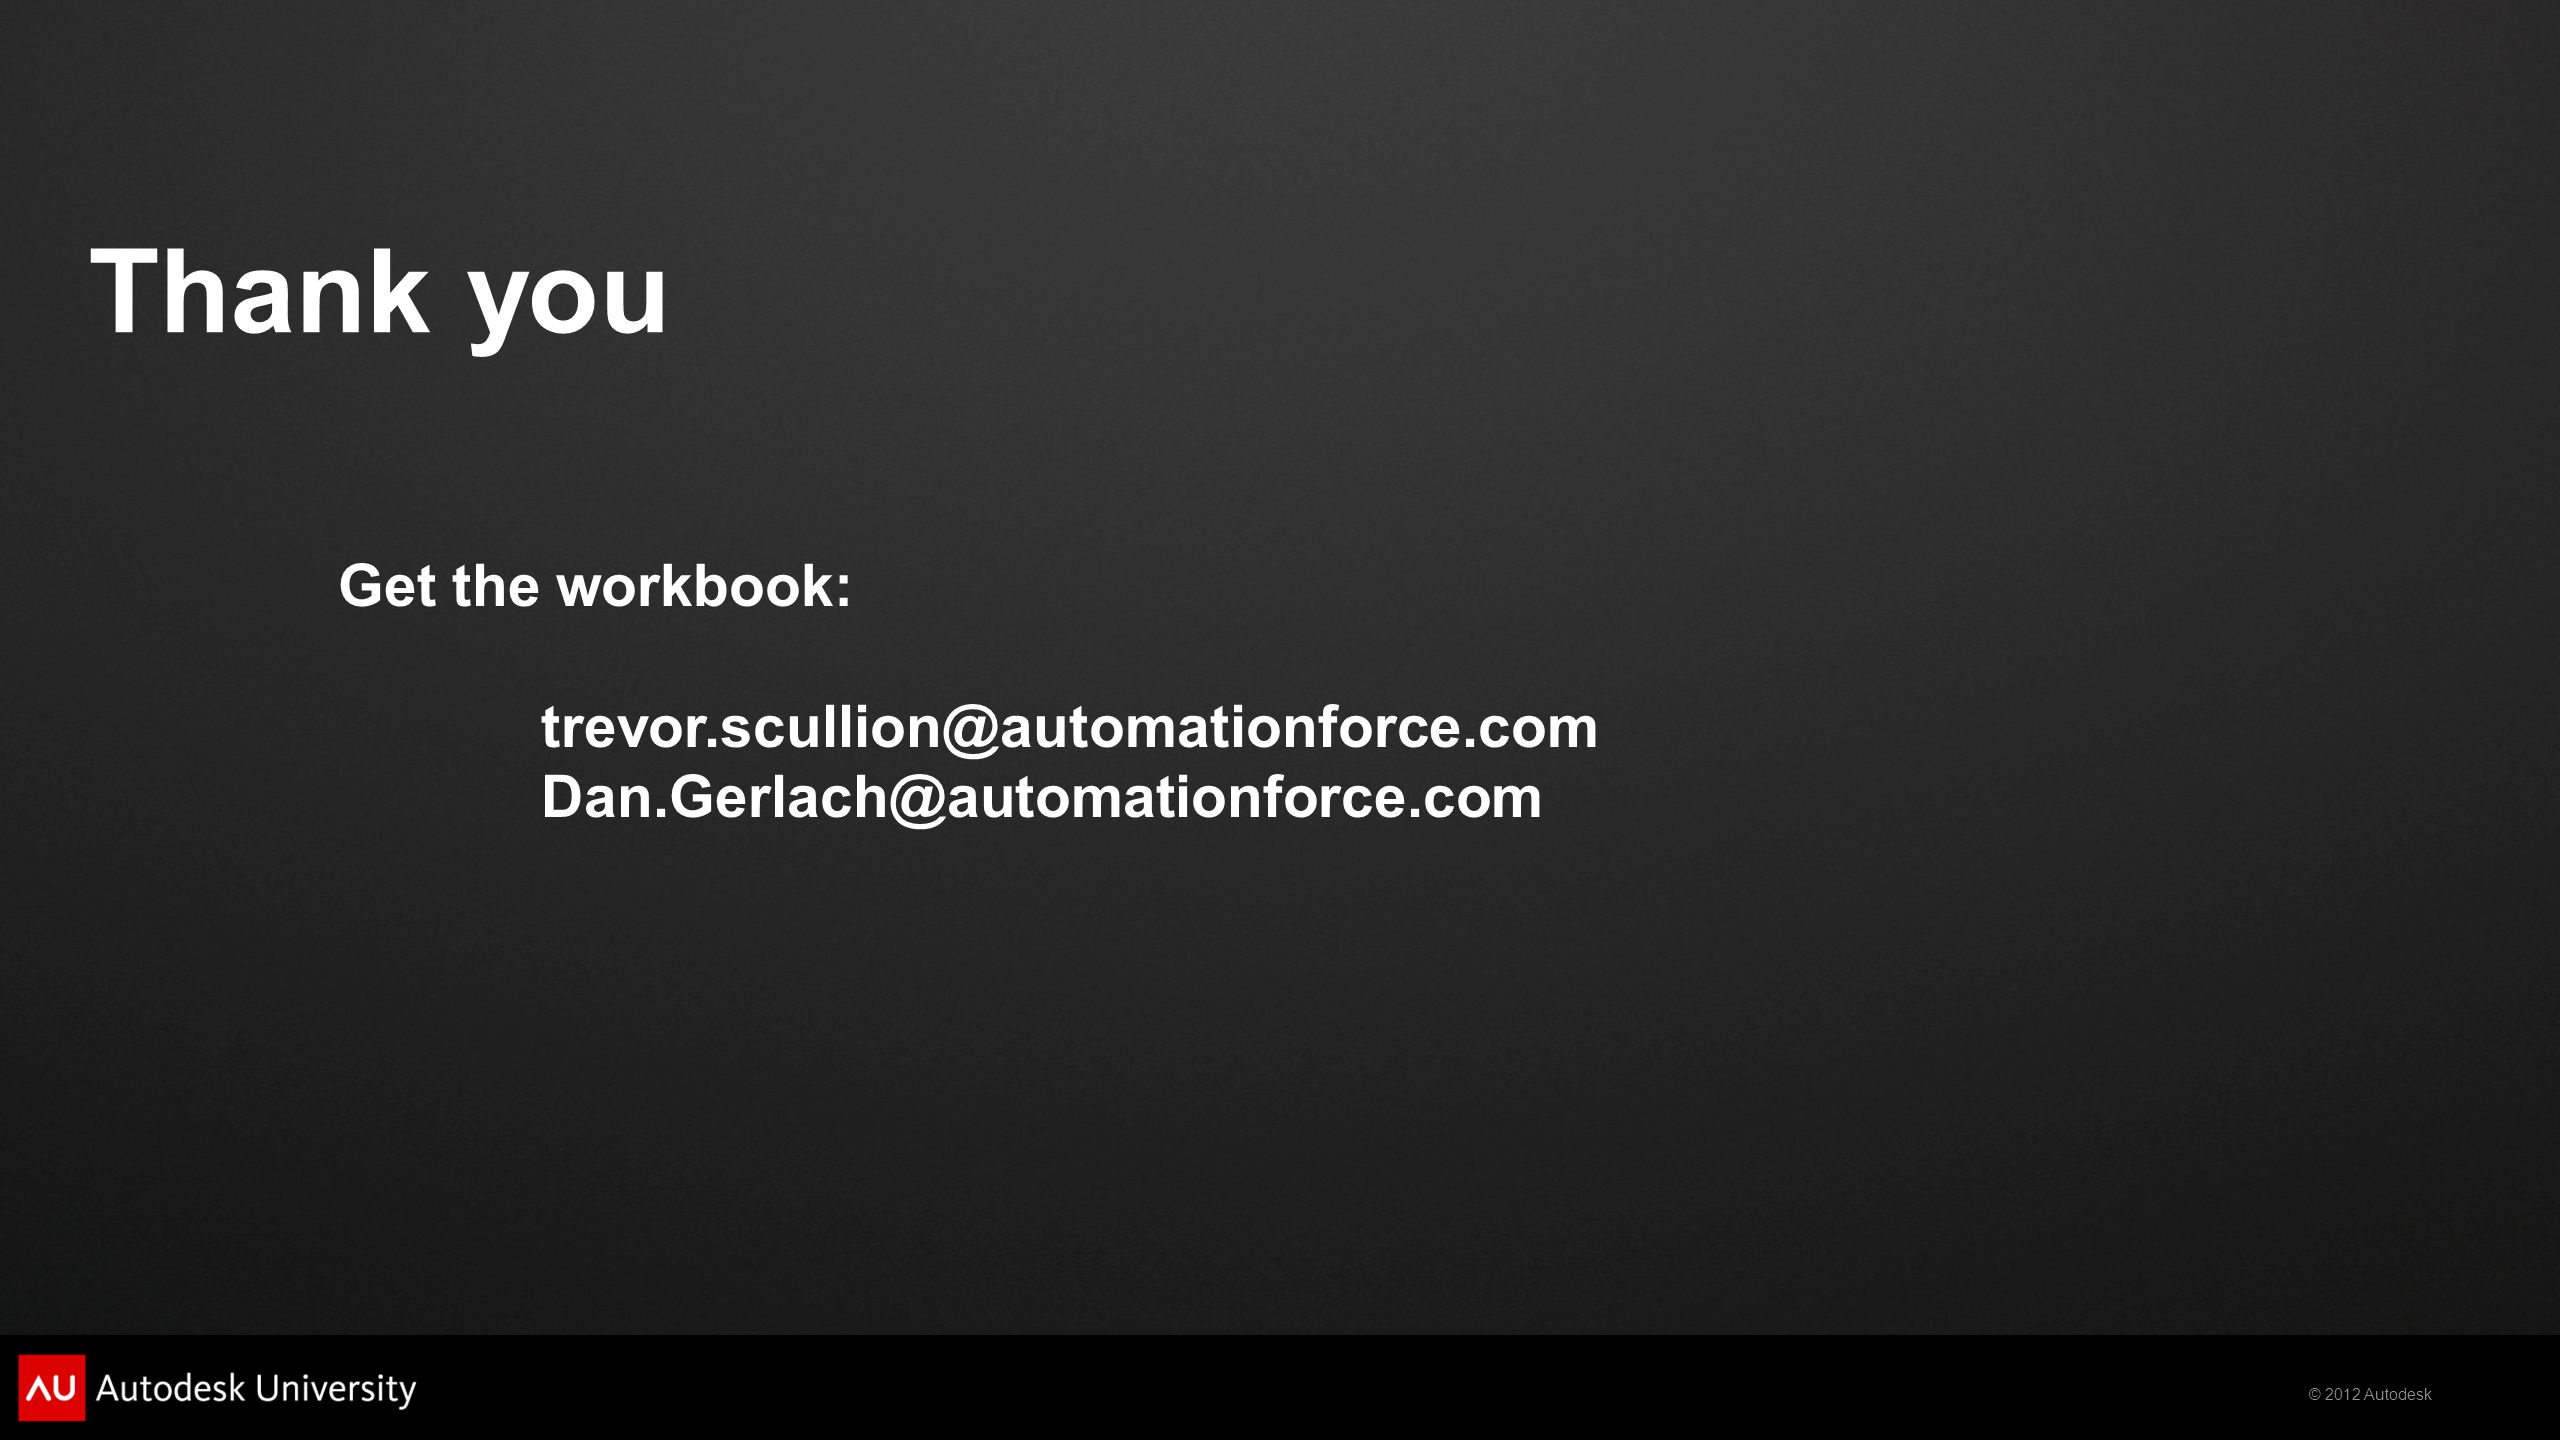 Thank you Get the workbook: trevor.scullion@automationforce.com